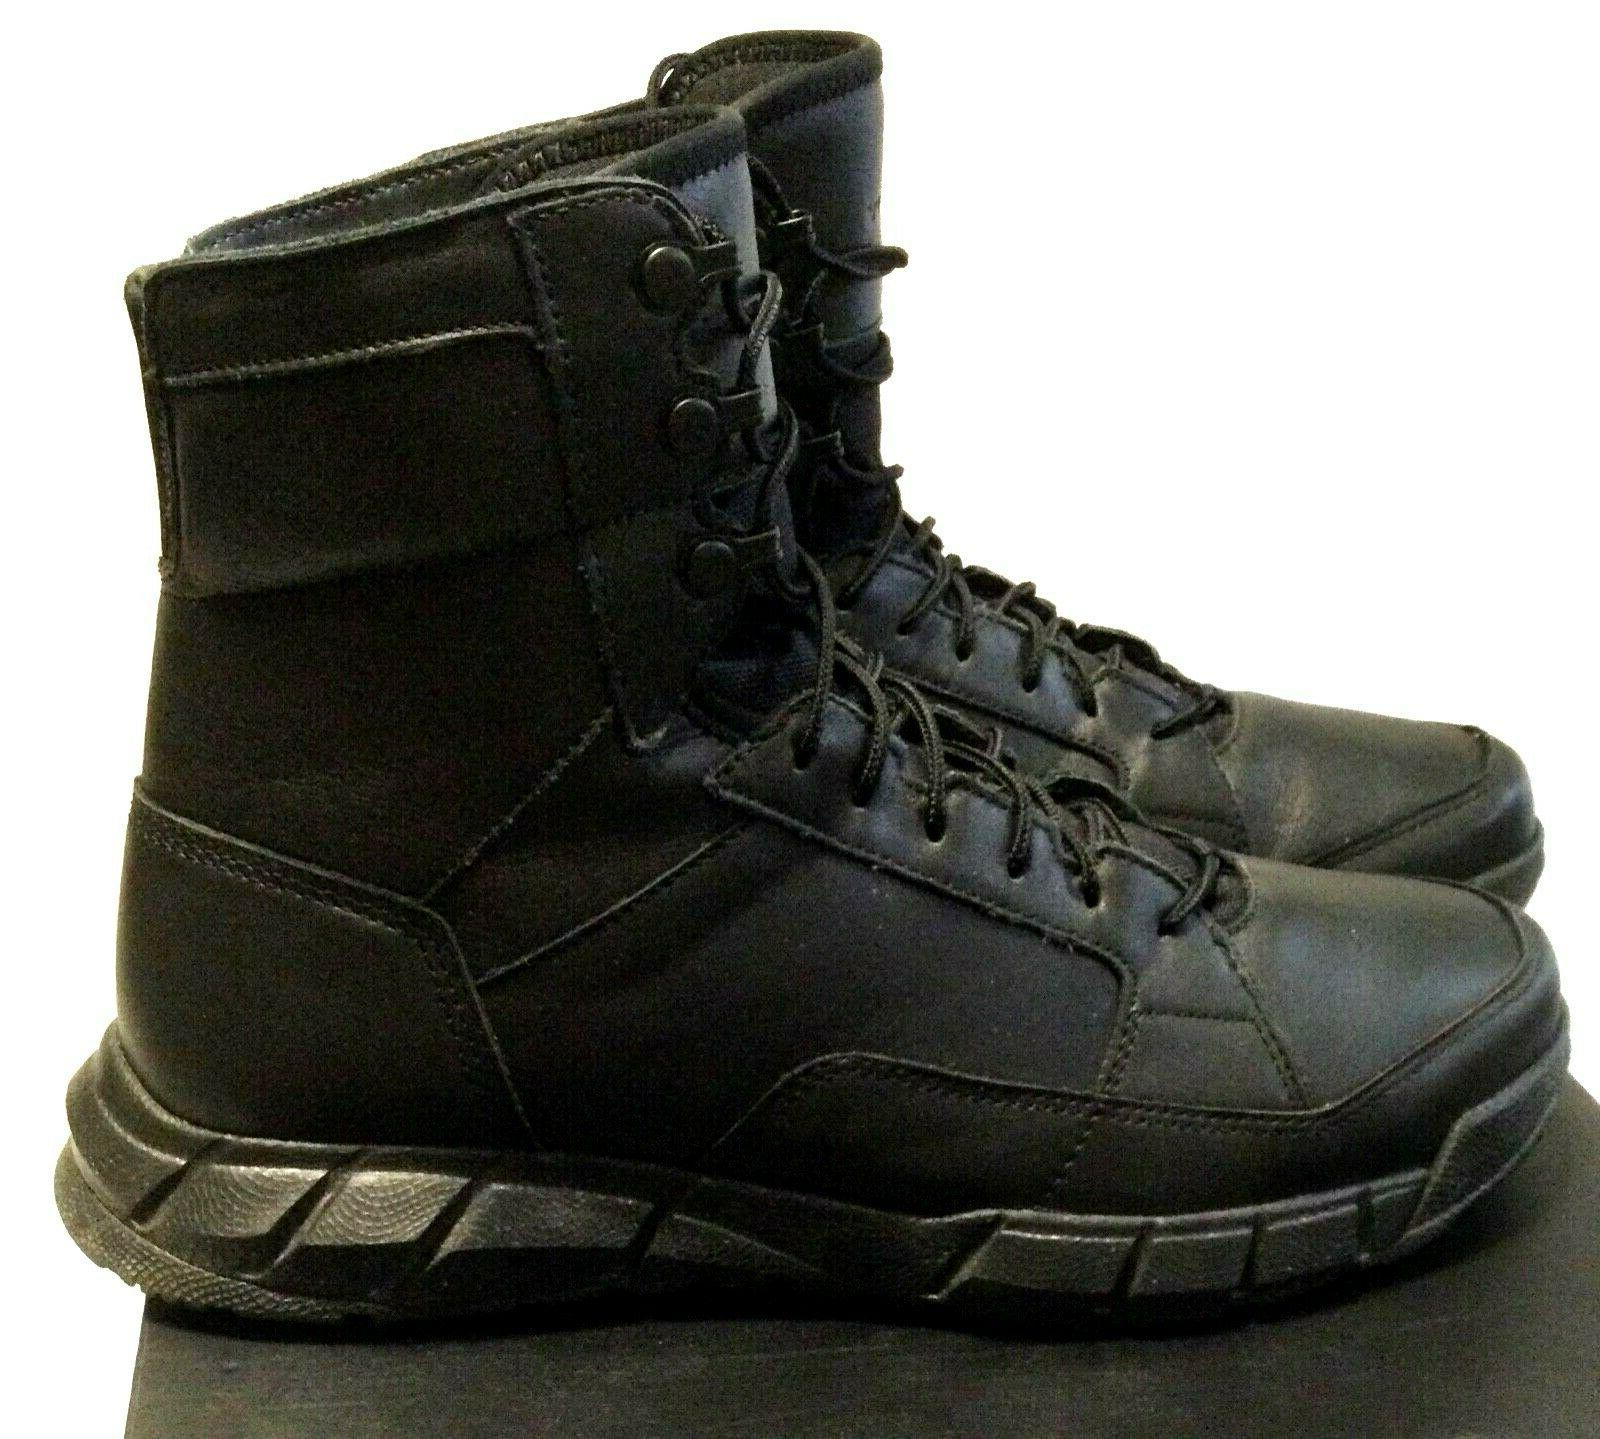 Oakley Boots Size 11 Leather Hiking Tactical